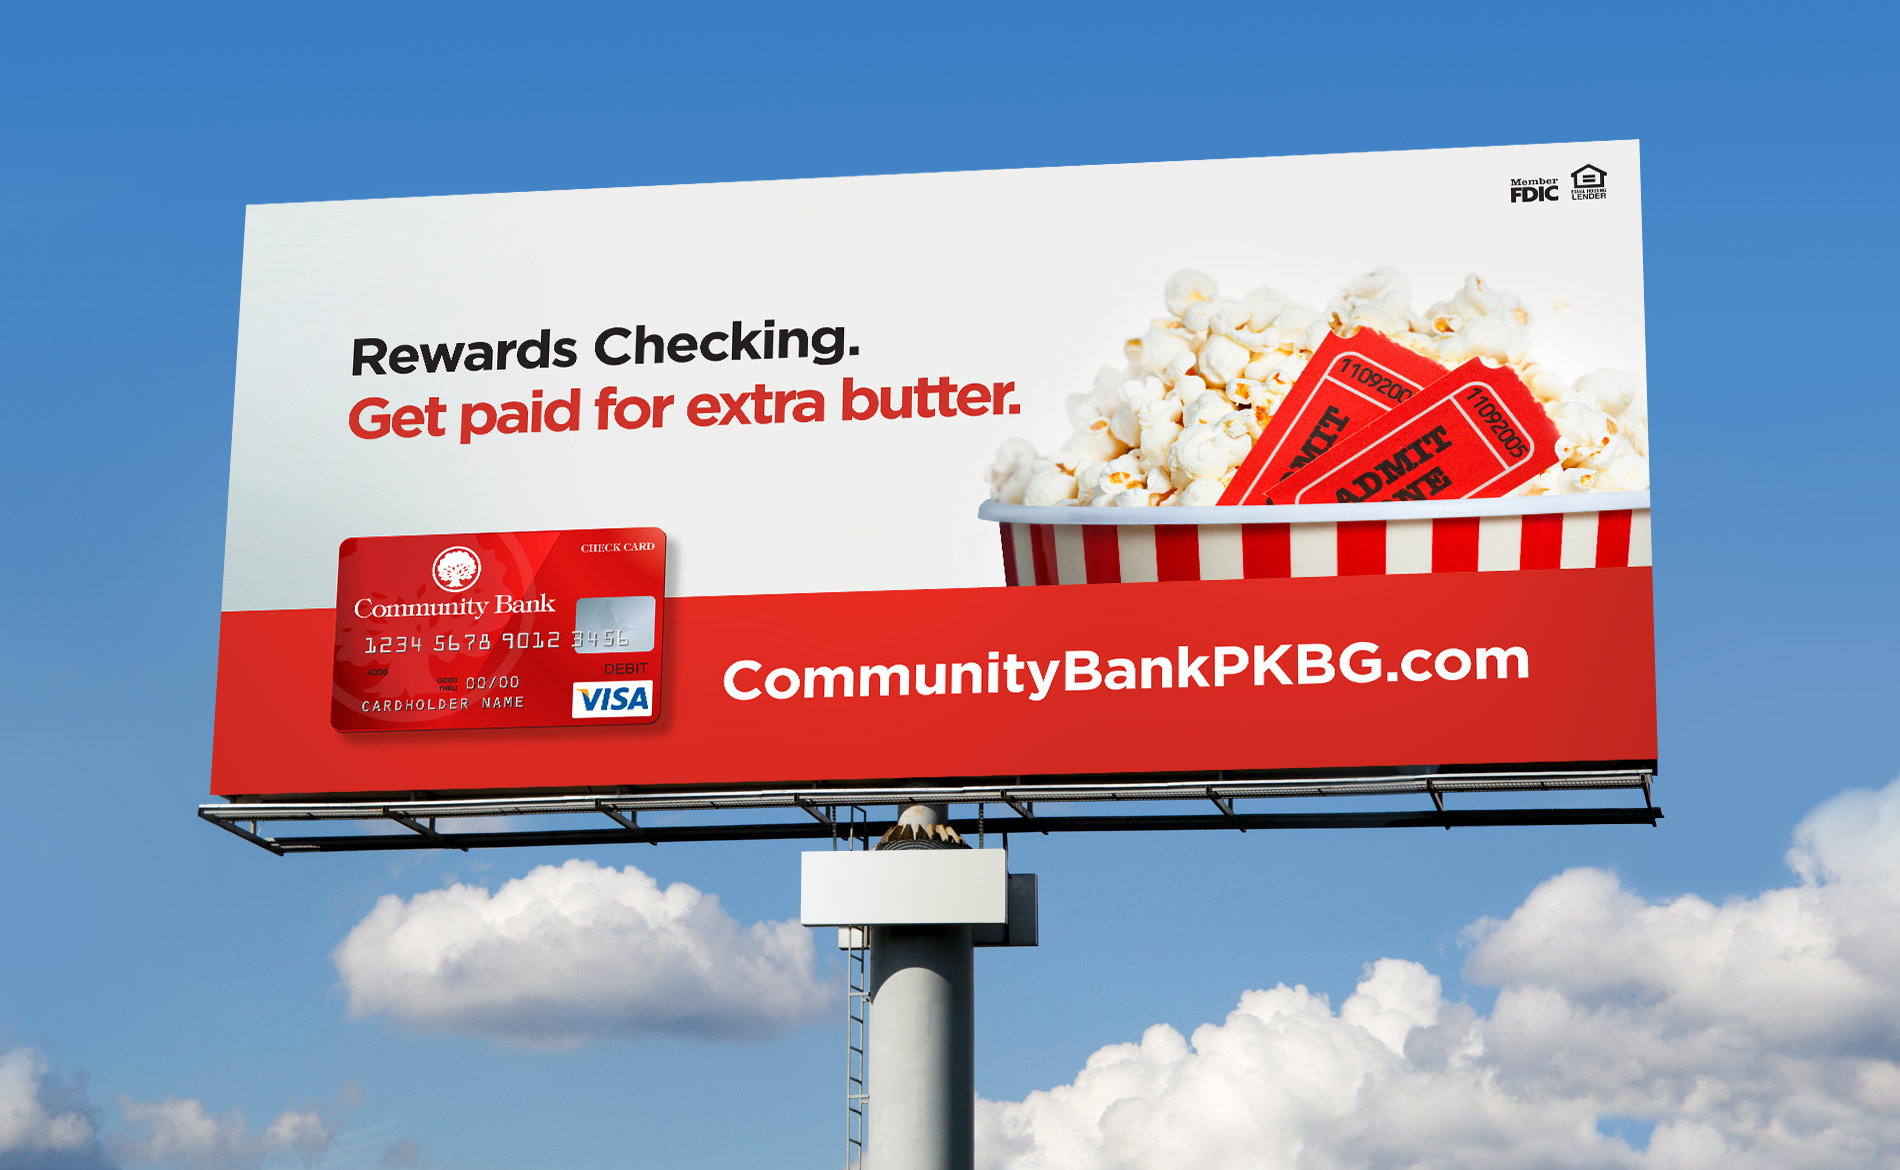 Community Bank, Rewards Checking: Outdoor